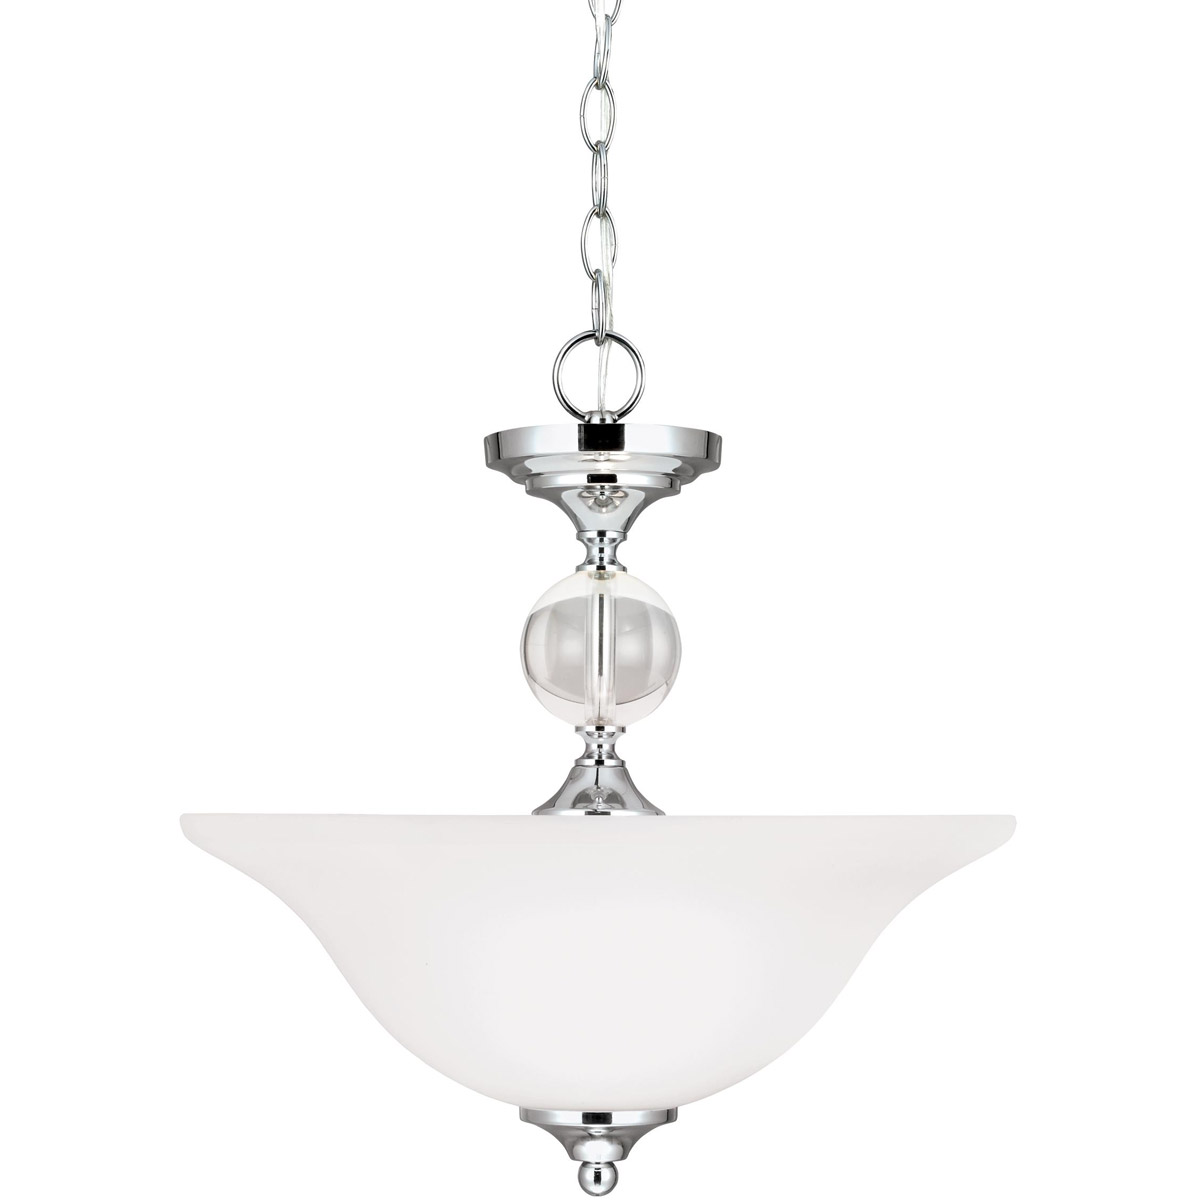 Sea Gull Englehorn 2 Light Semi-Flush Convertible Pendant in Chrome / Optic Crystal 7713402-05 photo